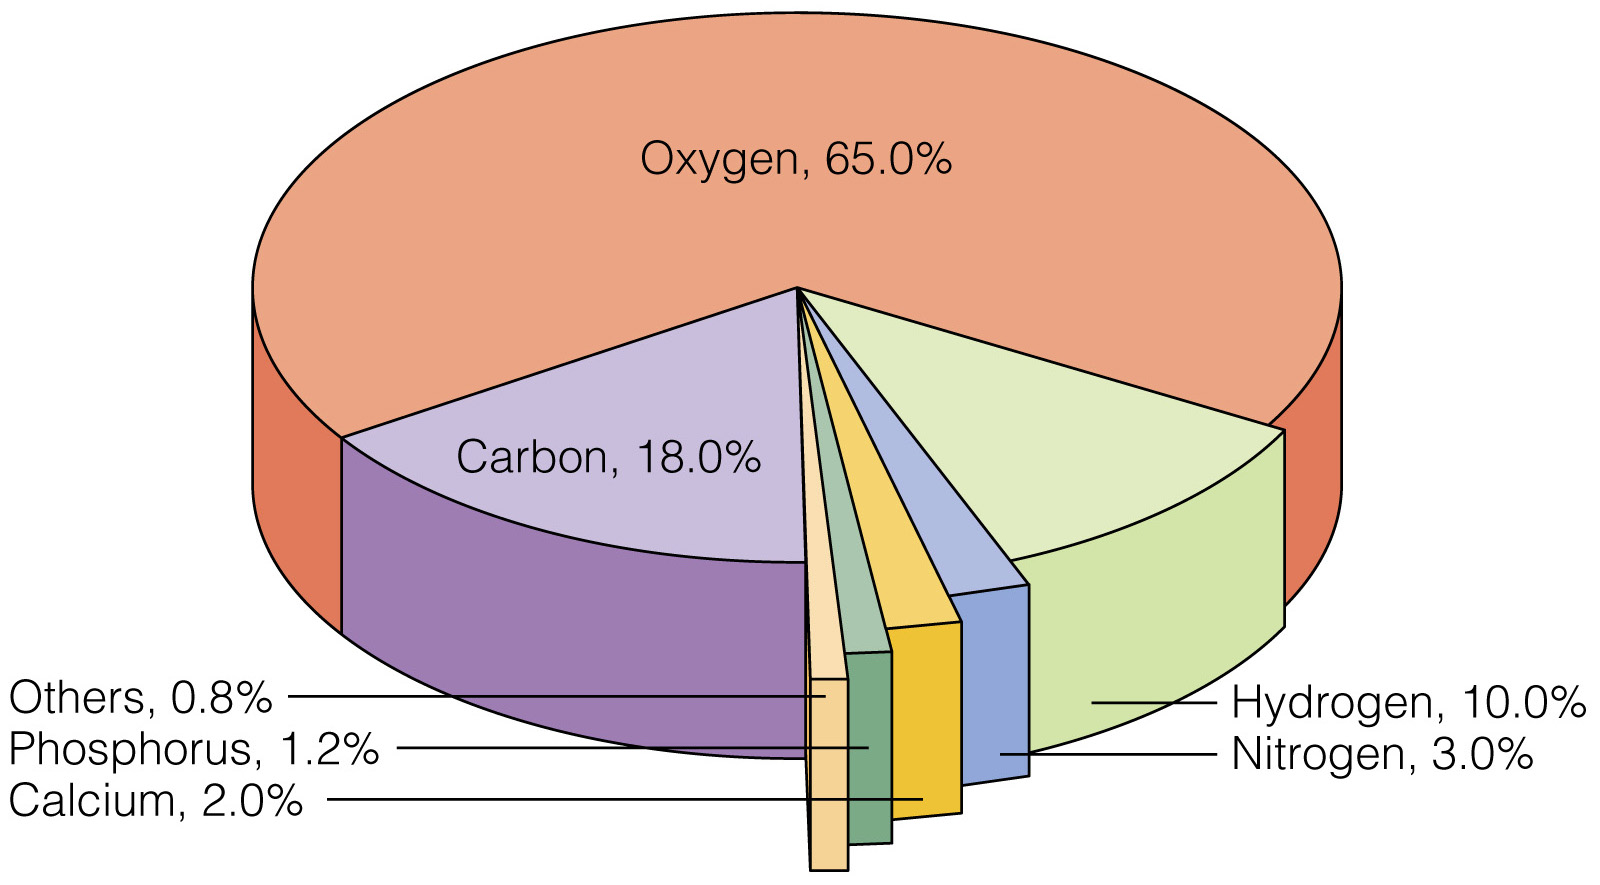 The Percentage Of Gases In Atmosphere Pie Chart